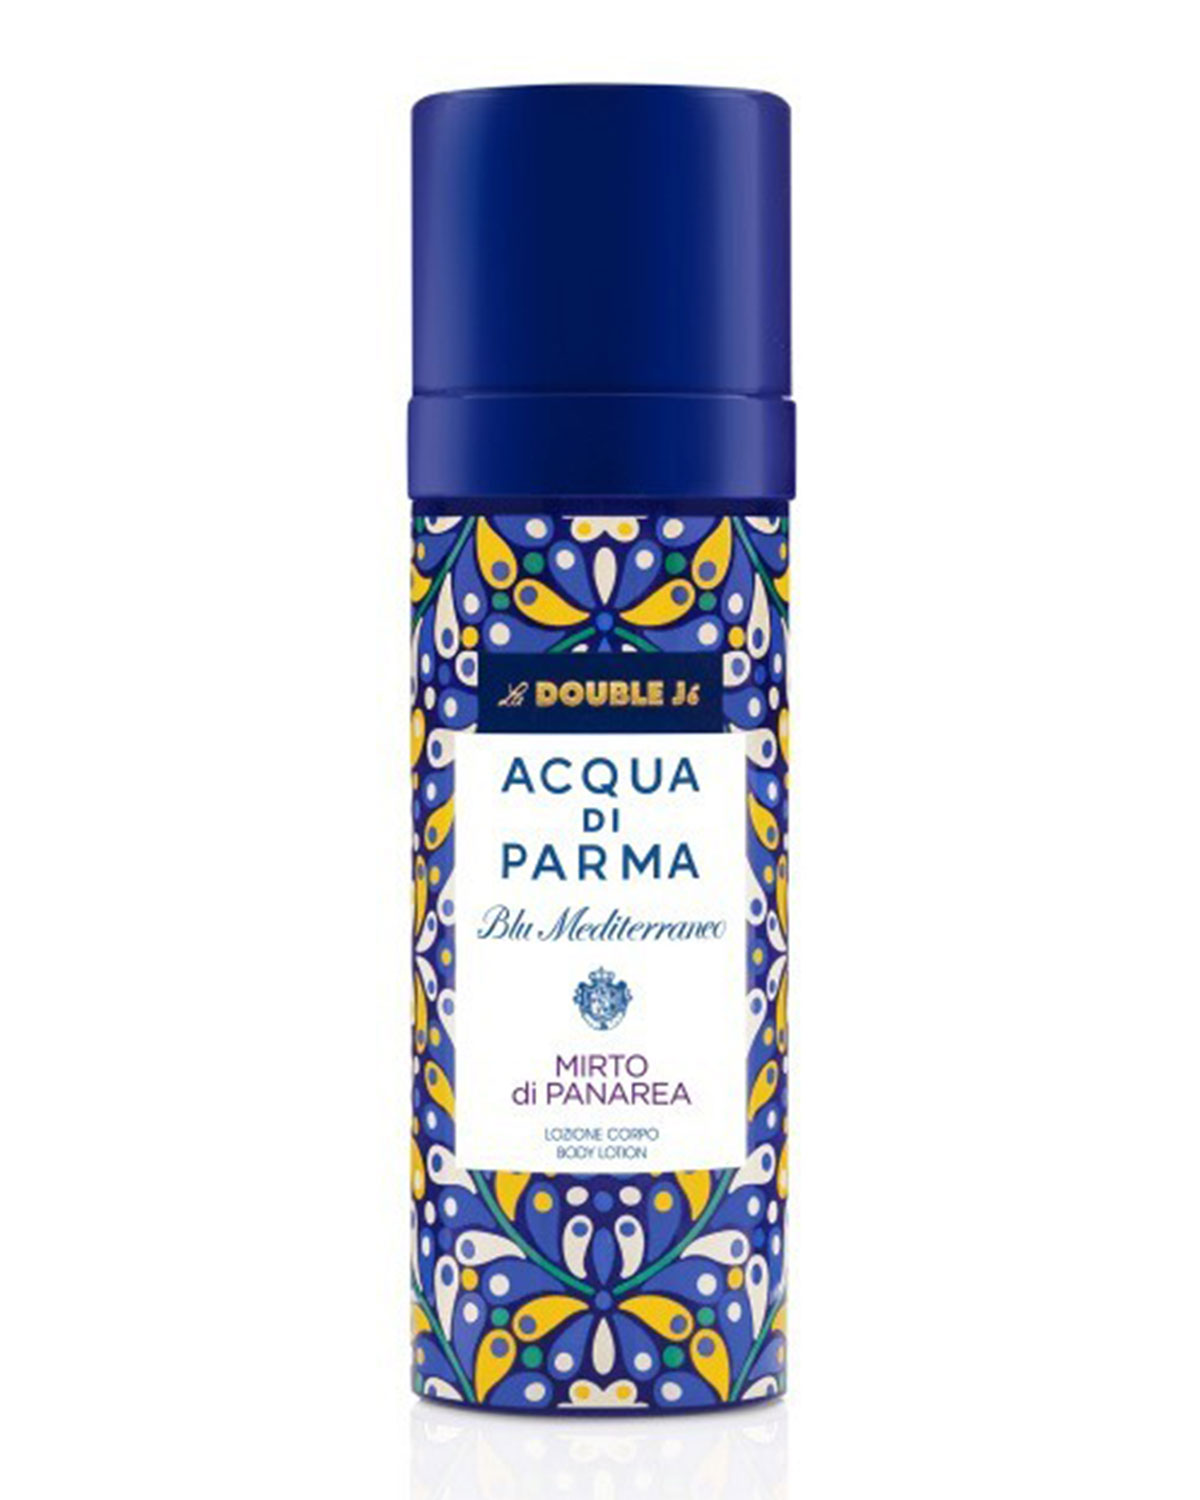 Acqua di Parma 5 oz. Mirto di Panarea Body Lotion